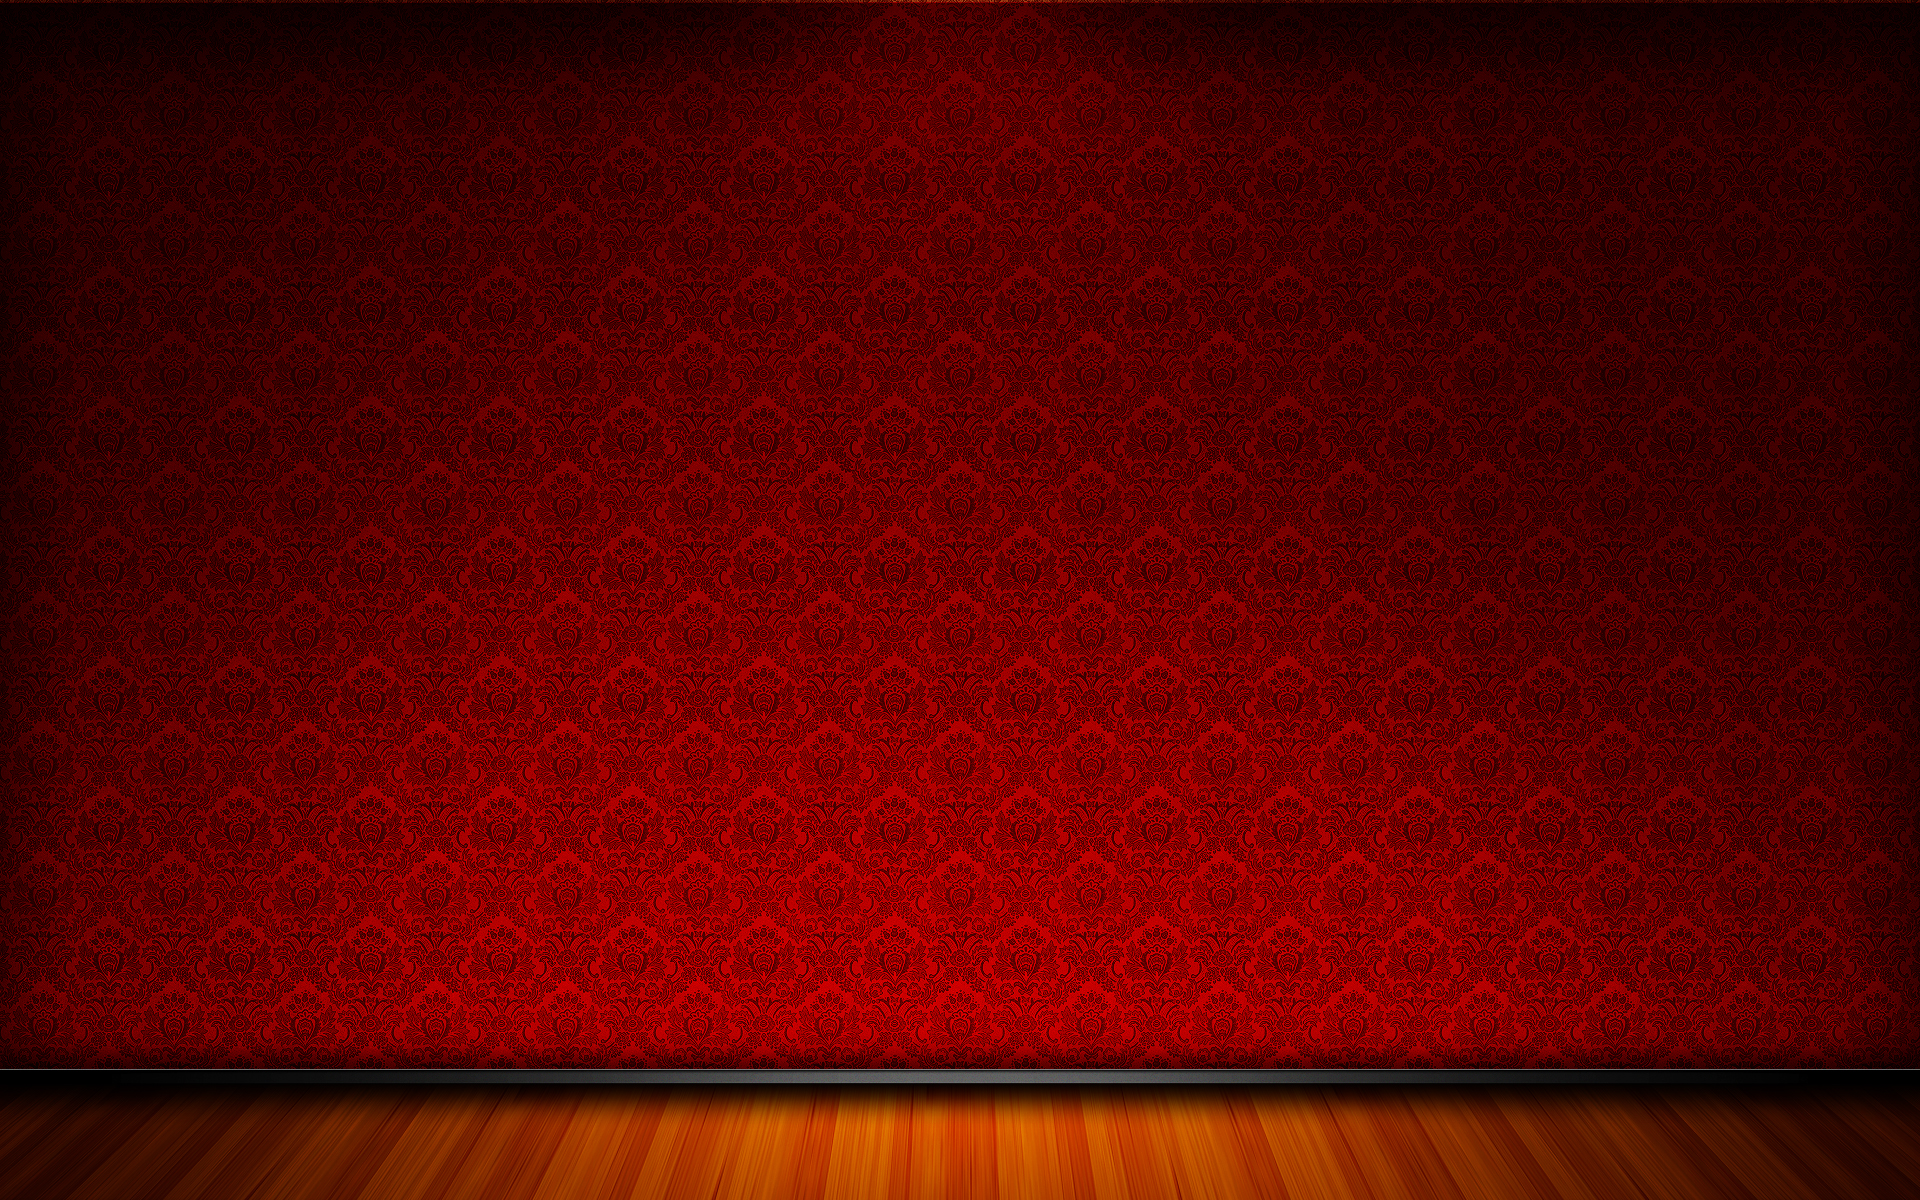 Wallpapers Room Red Classique Wallpaper Side7 House 1920x1200